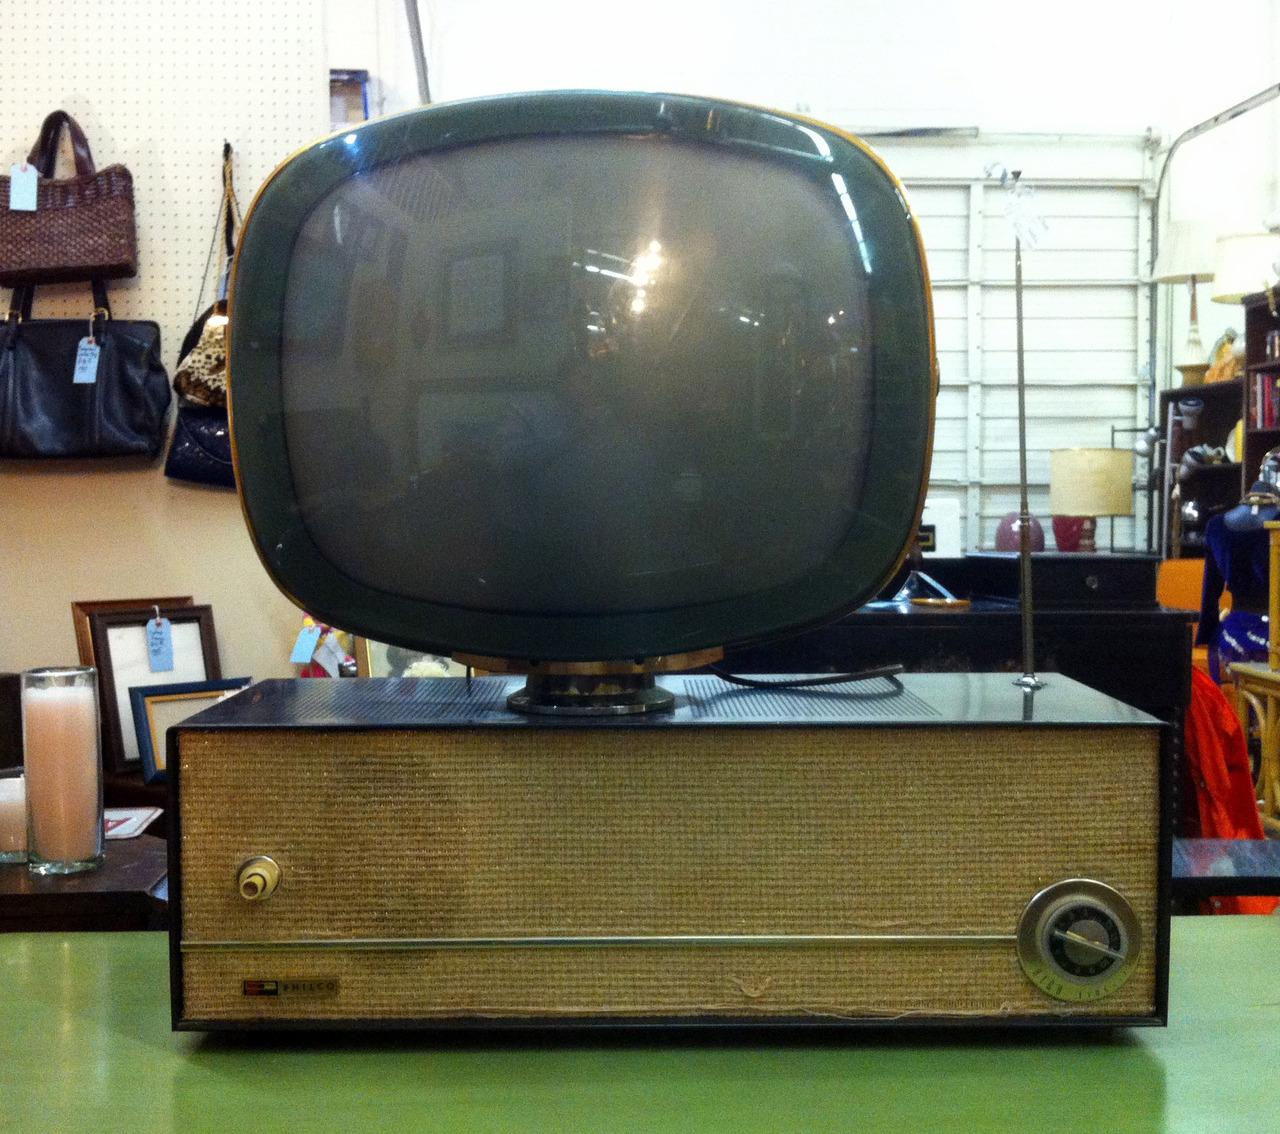 I think this is a Philco Predicta model TV from the late 1950s. I saw it at an antique shop here in Dallas last week for $400.00 and the tag said it works.